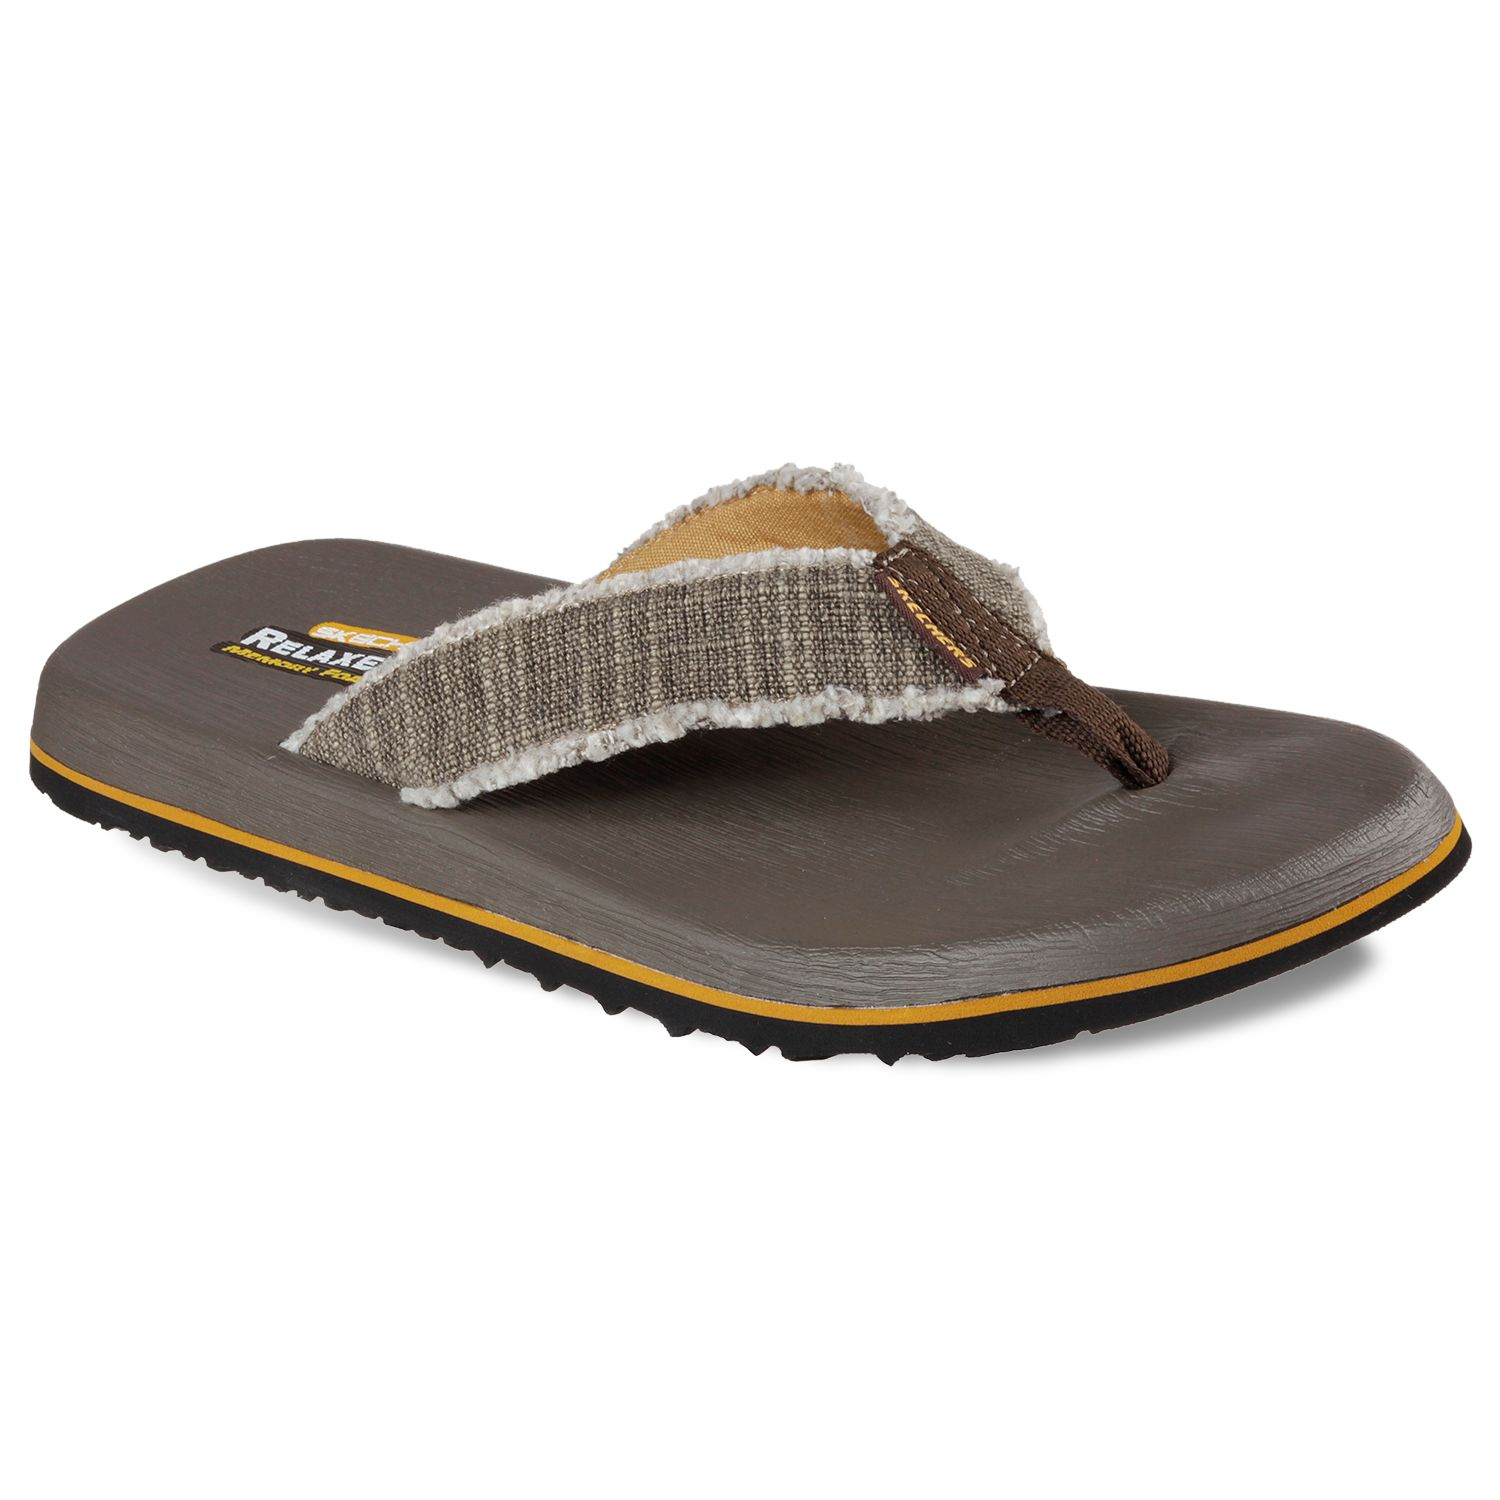 skechers relaxed fit flip flops